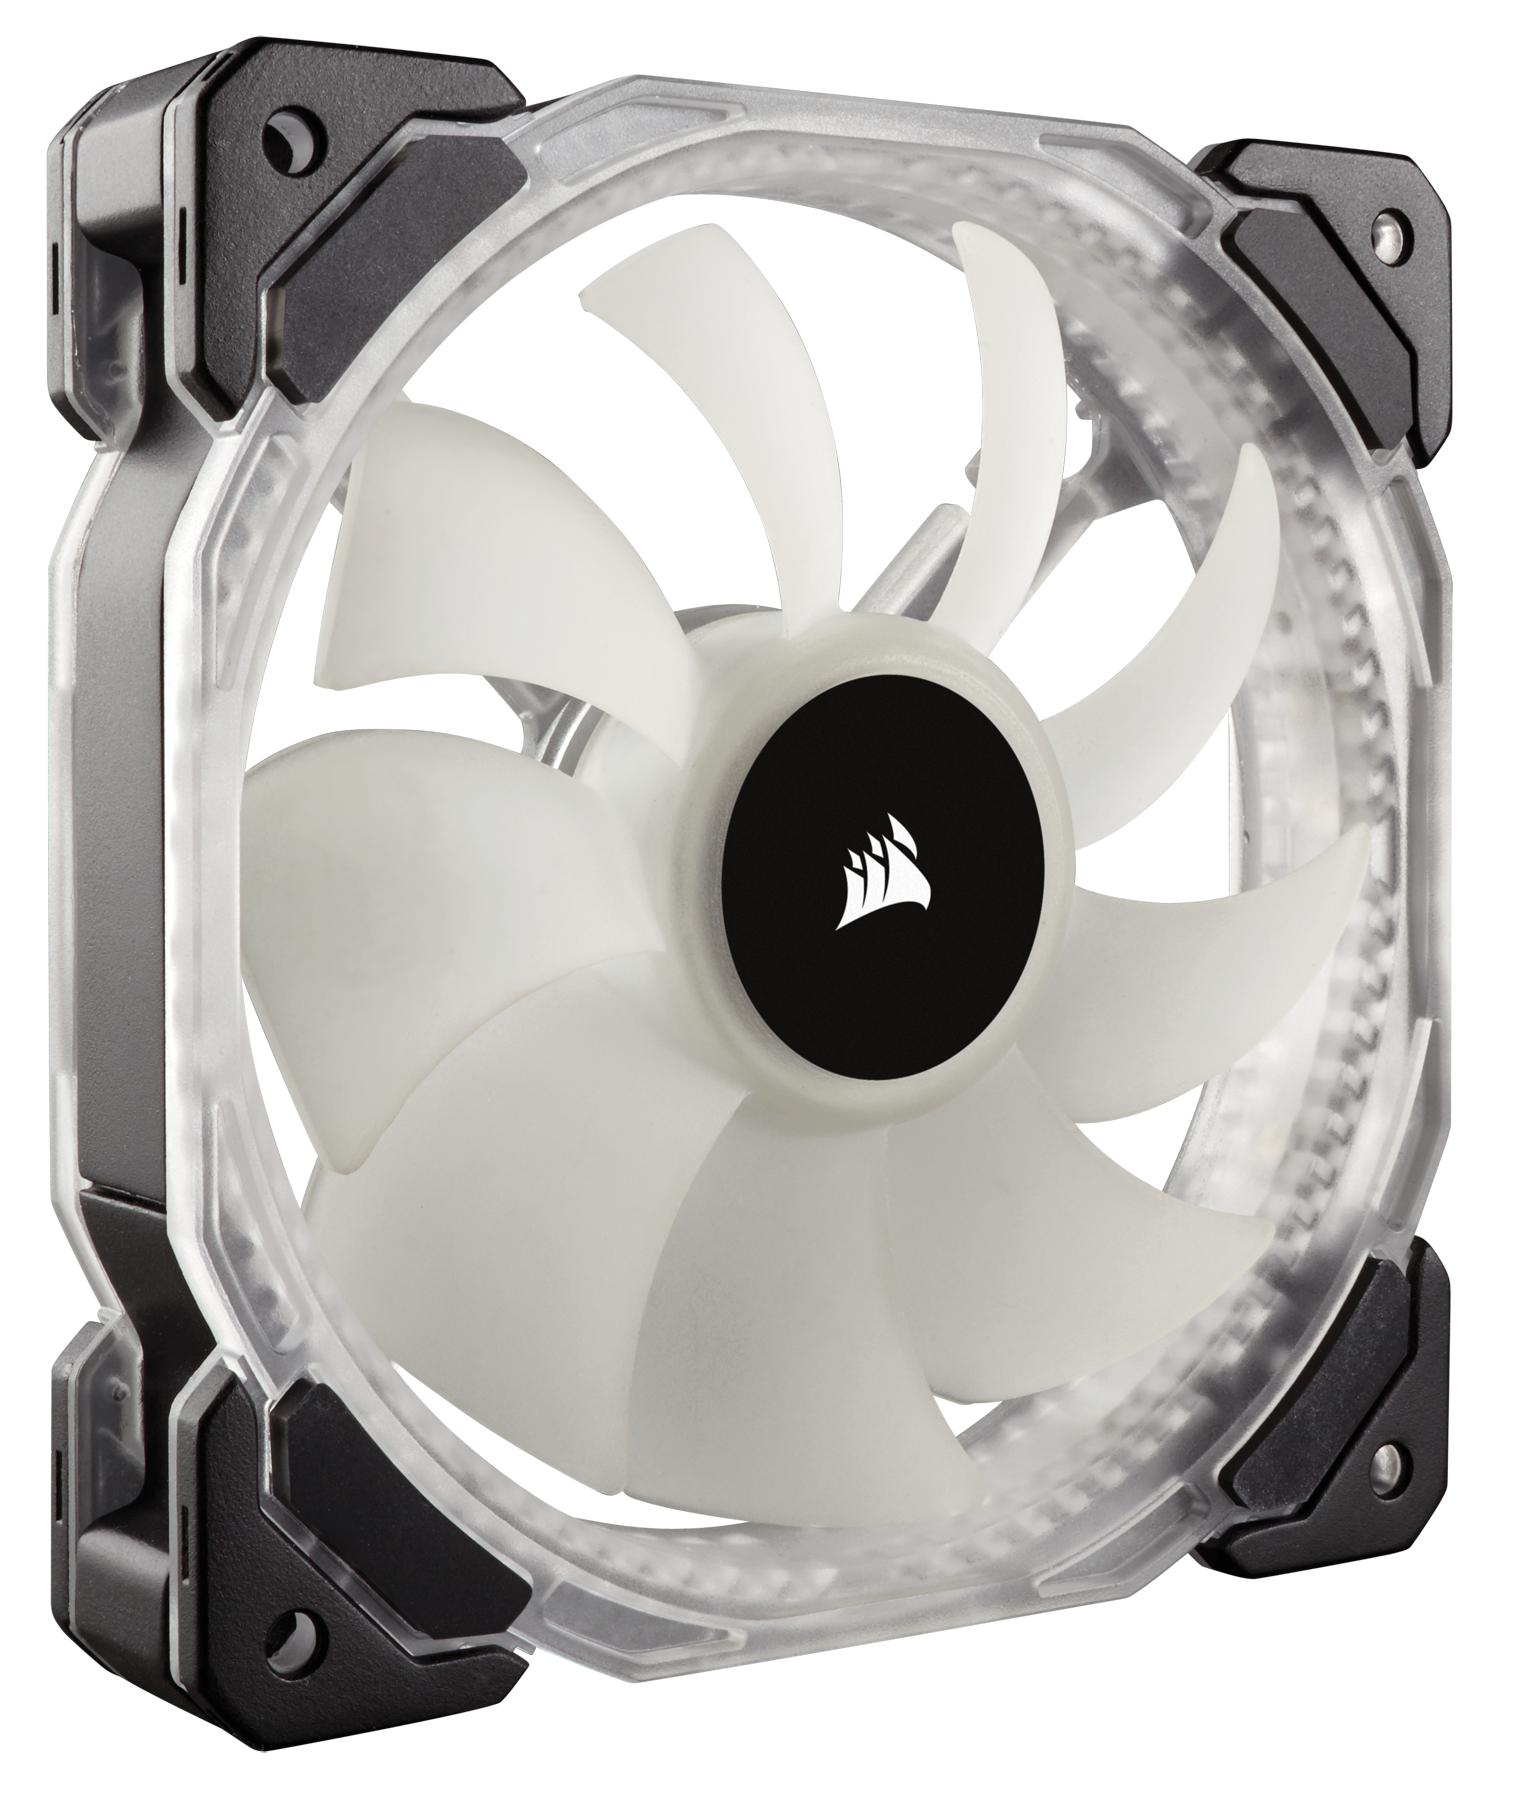 Corsair Hd Series Hd120 Rgb Led 120mm High Performance By A Pull Chain Or In Some Newer Fans Wireless Remote Individually Addressable Pwm Case Fan Co 9050067 Ww 3 Pack